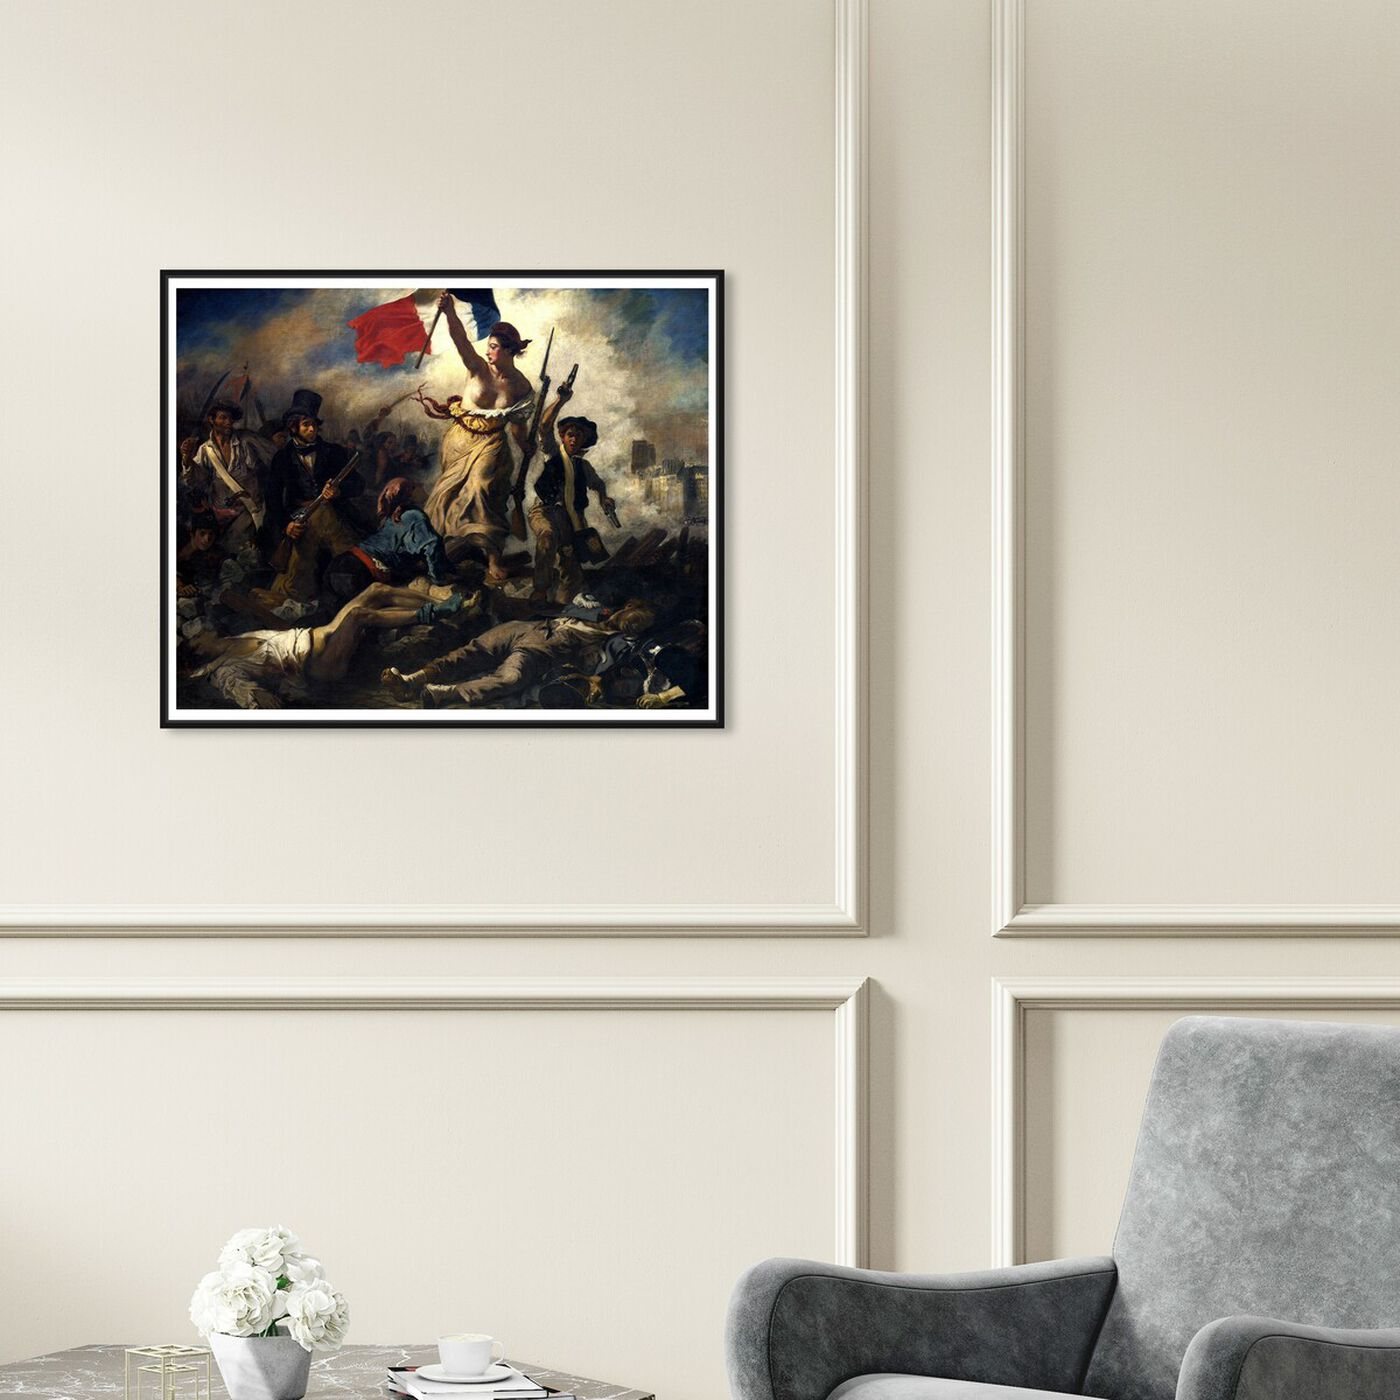 Hanging view of Delacroix - La Liberte Guidant Le Peuple featuring classic and figurative and classical figures art.